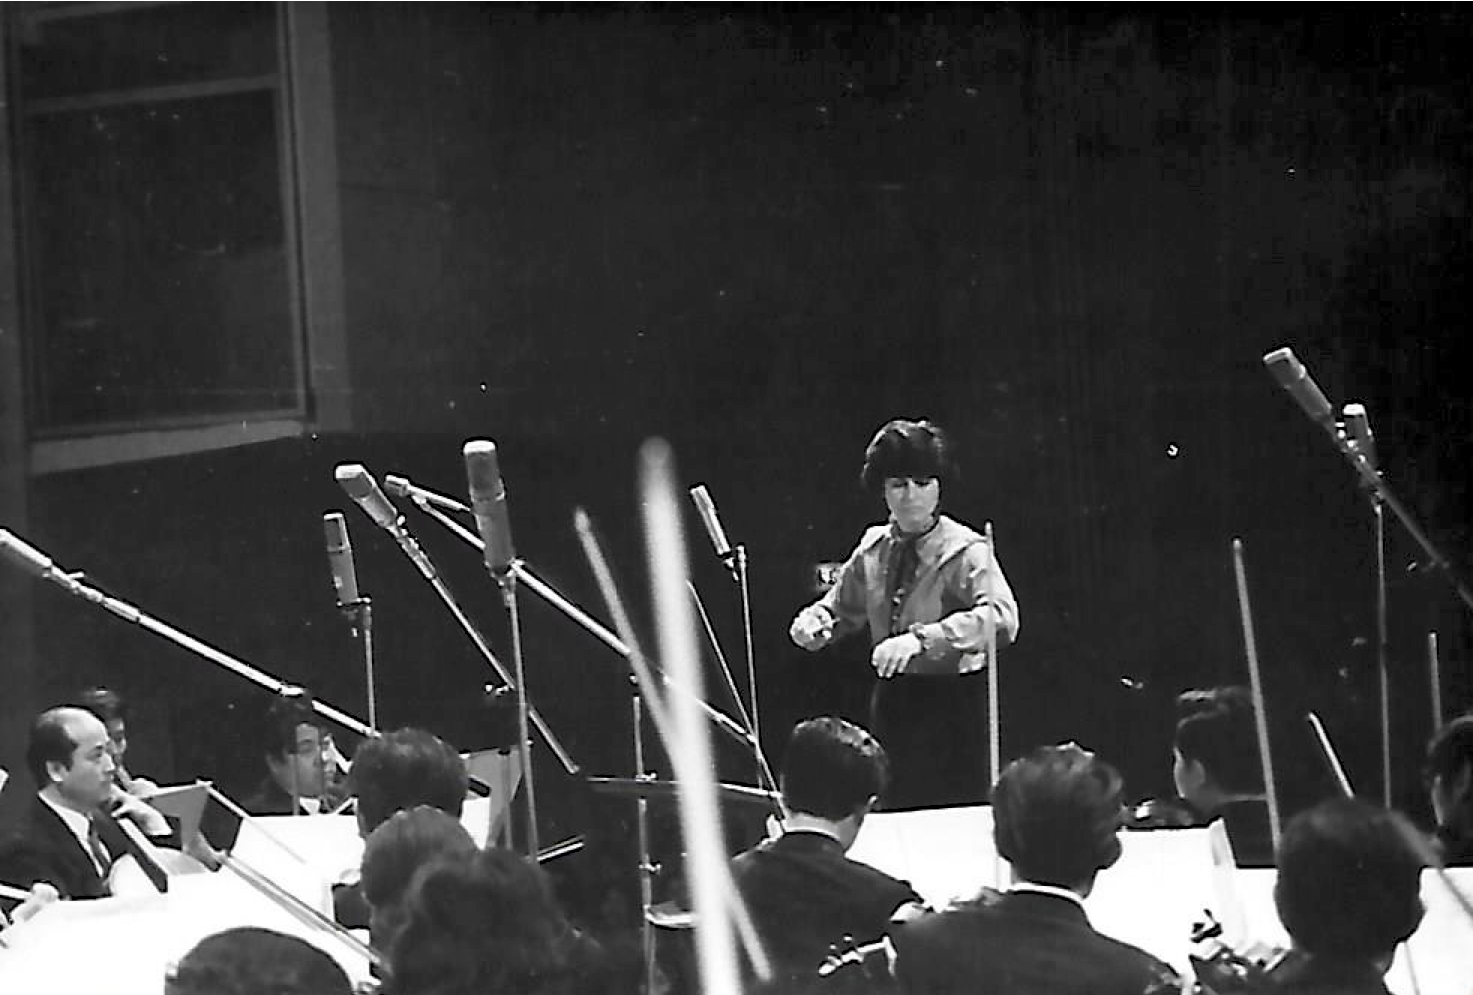 Symphony Orchestra of the Central Ballet, Beijing, China